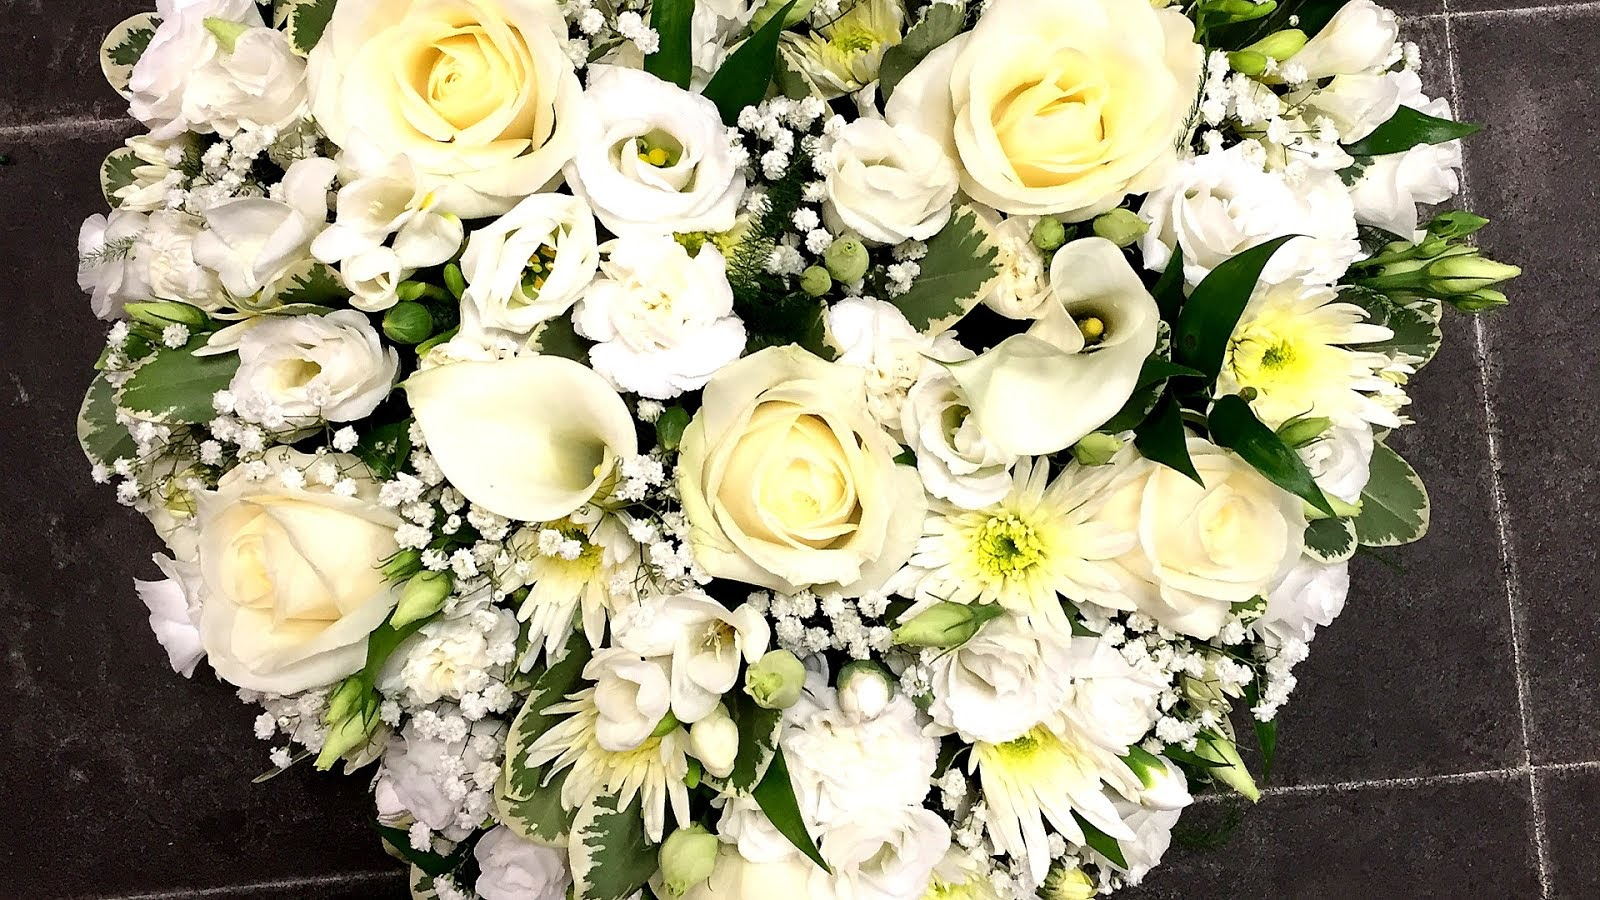 Funeral Funreal Flowers Flower Choices